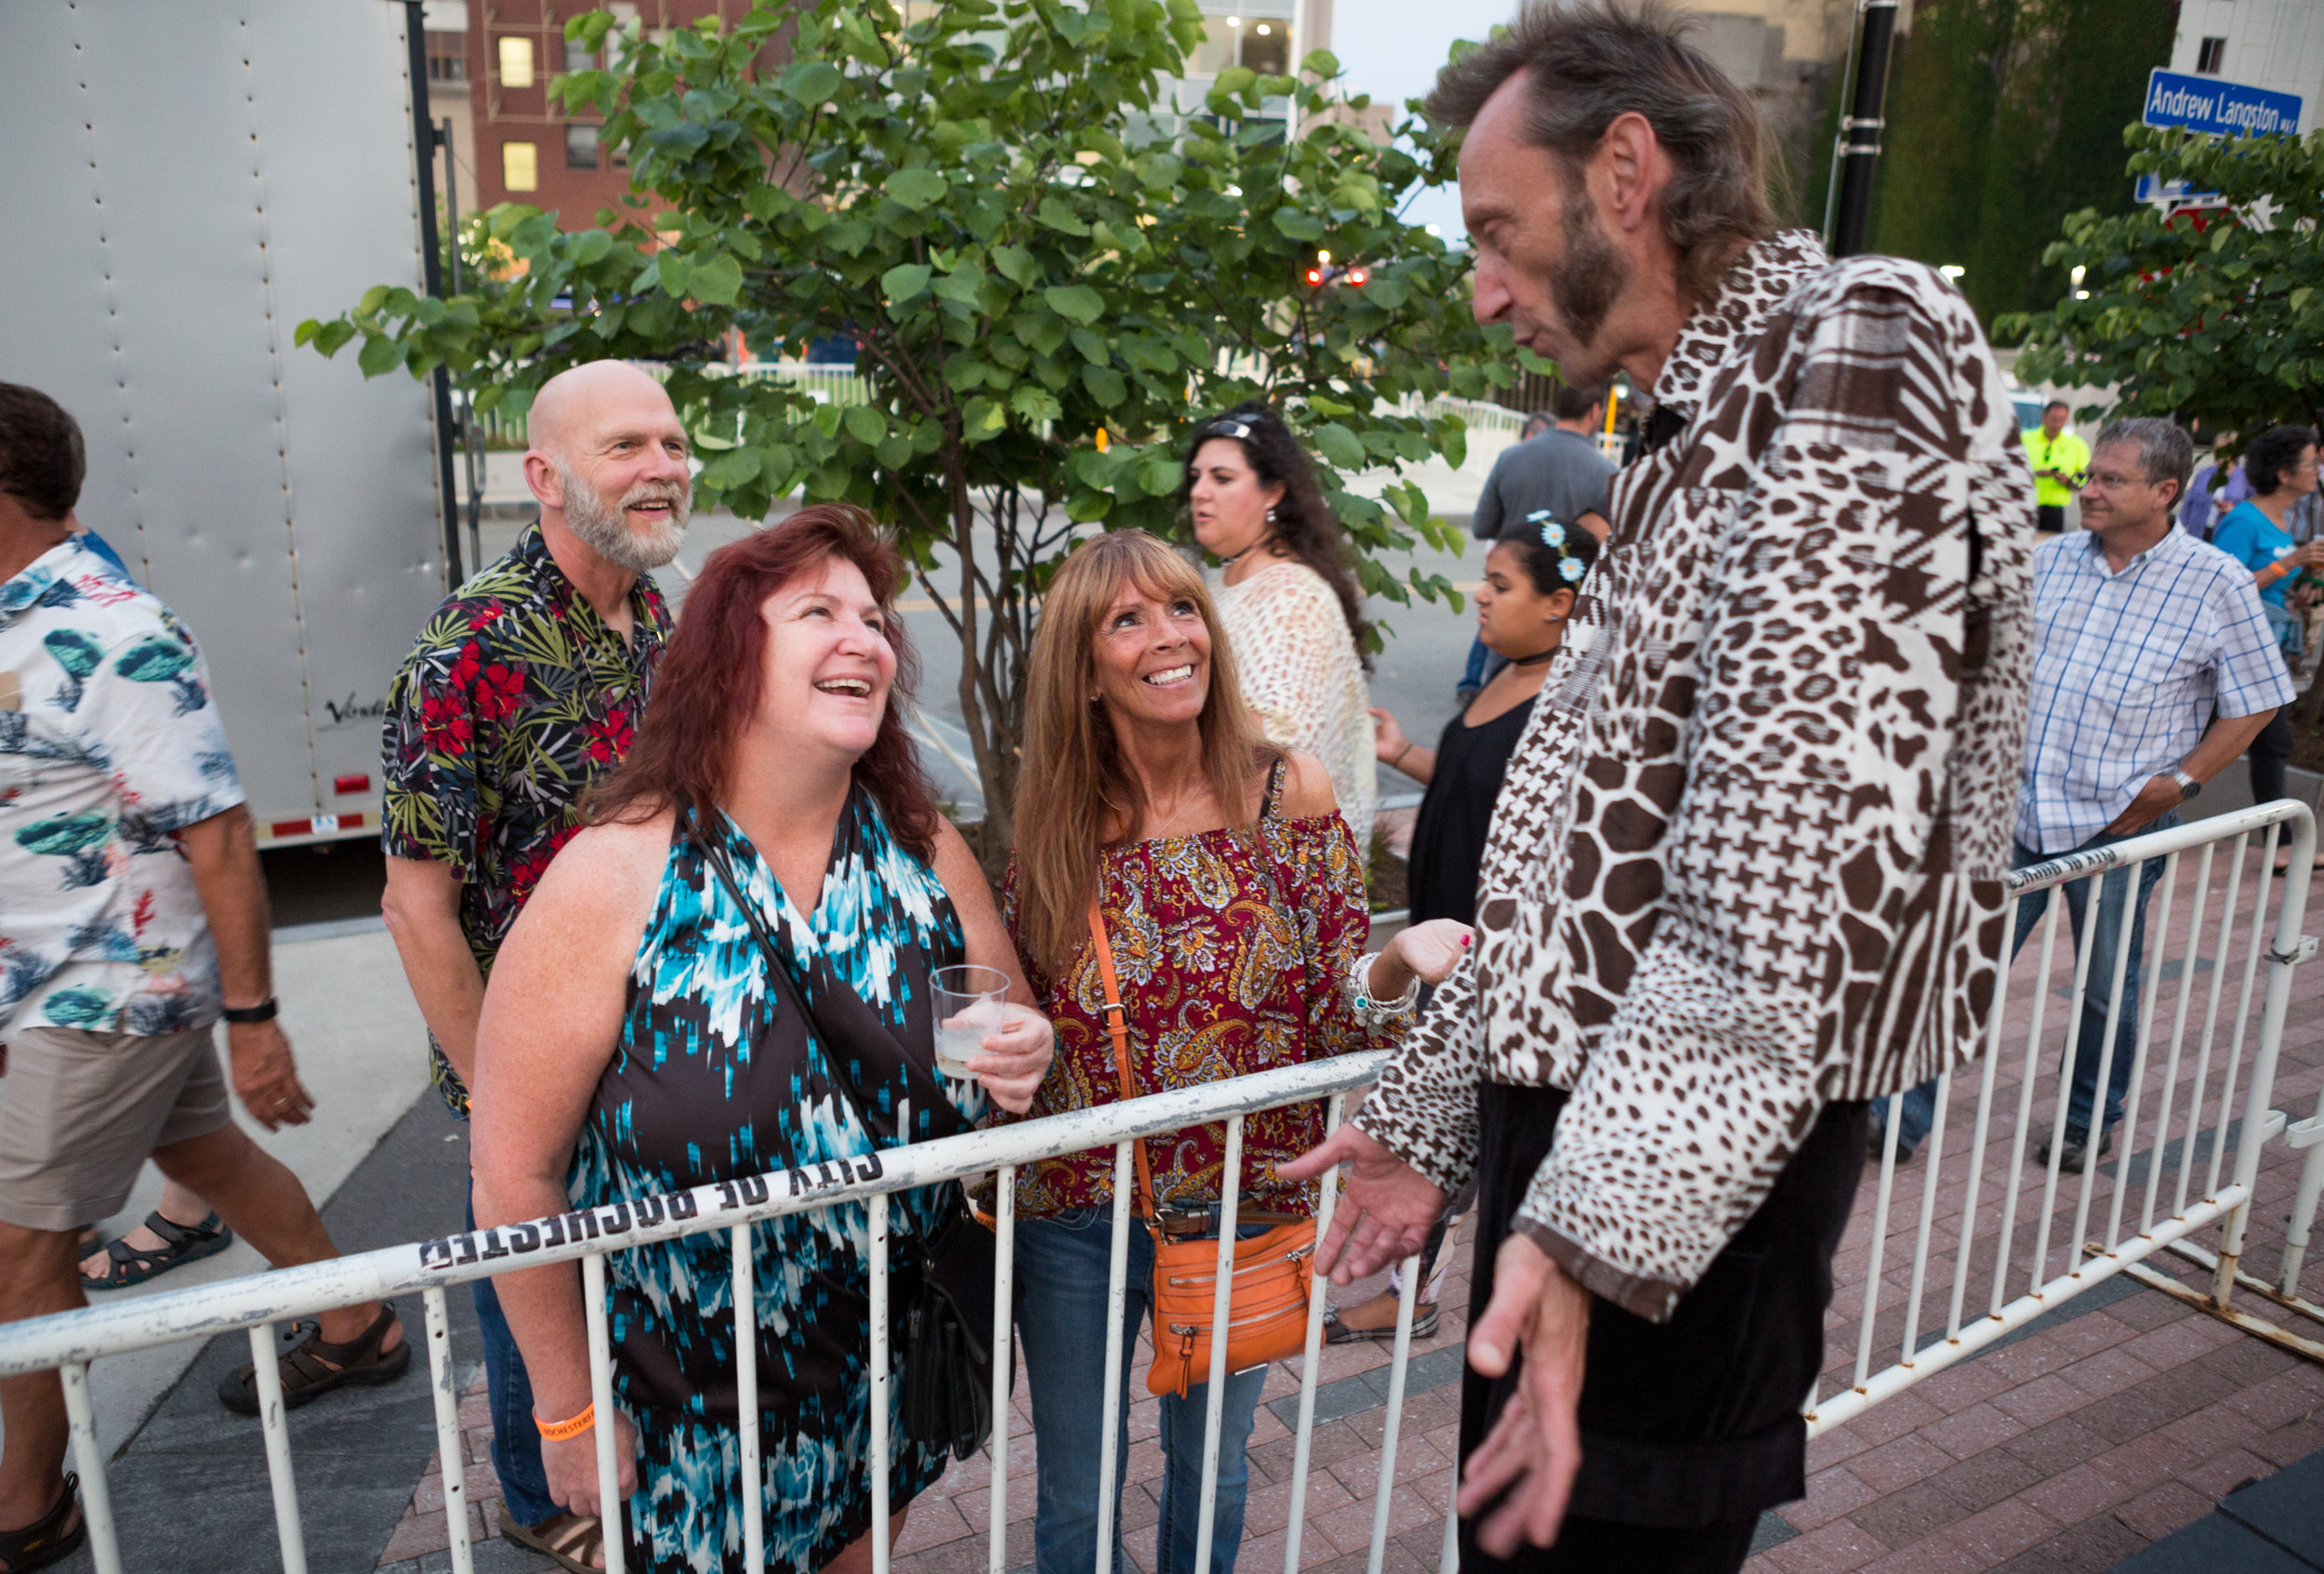 Jean-Marc Noirot-Cosson talks with onlookers before he goes on to perform with Plasticiens Volants in Rochester, N.Y. The show would be only the second time Plasticiens Volants would perform in the United States.